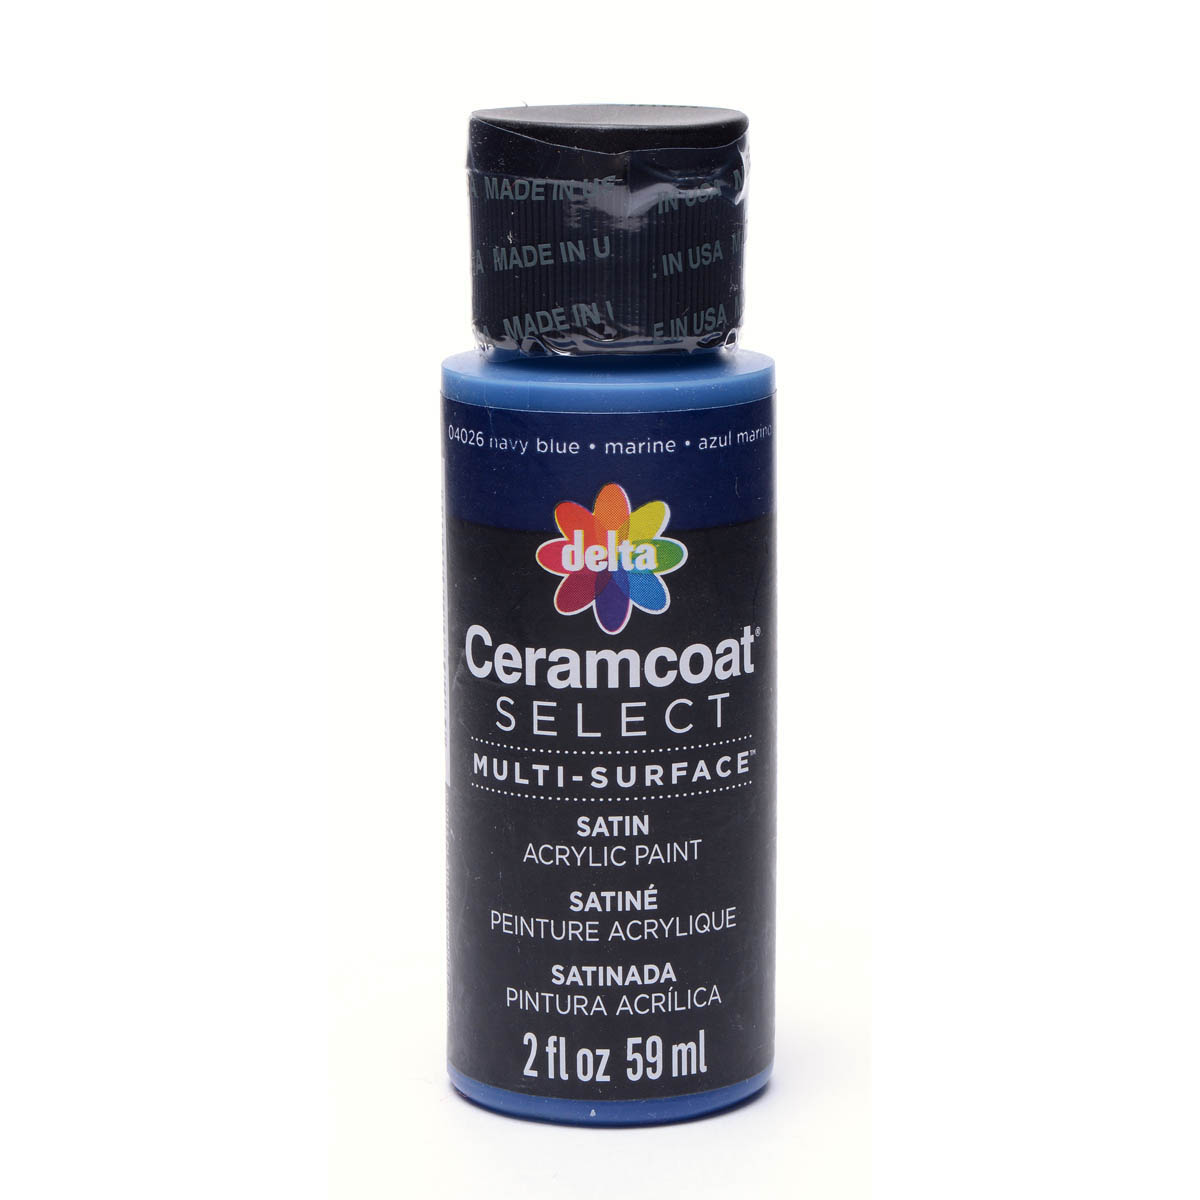 Delta Ceramcoat ® Select Multi-Surface Acrylic Paint - Satin - Navy Blue, 2 oz.